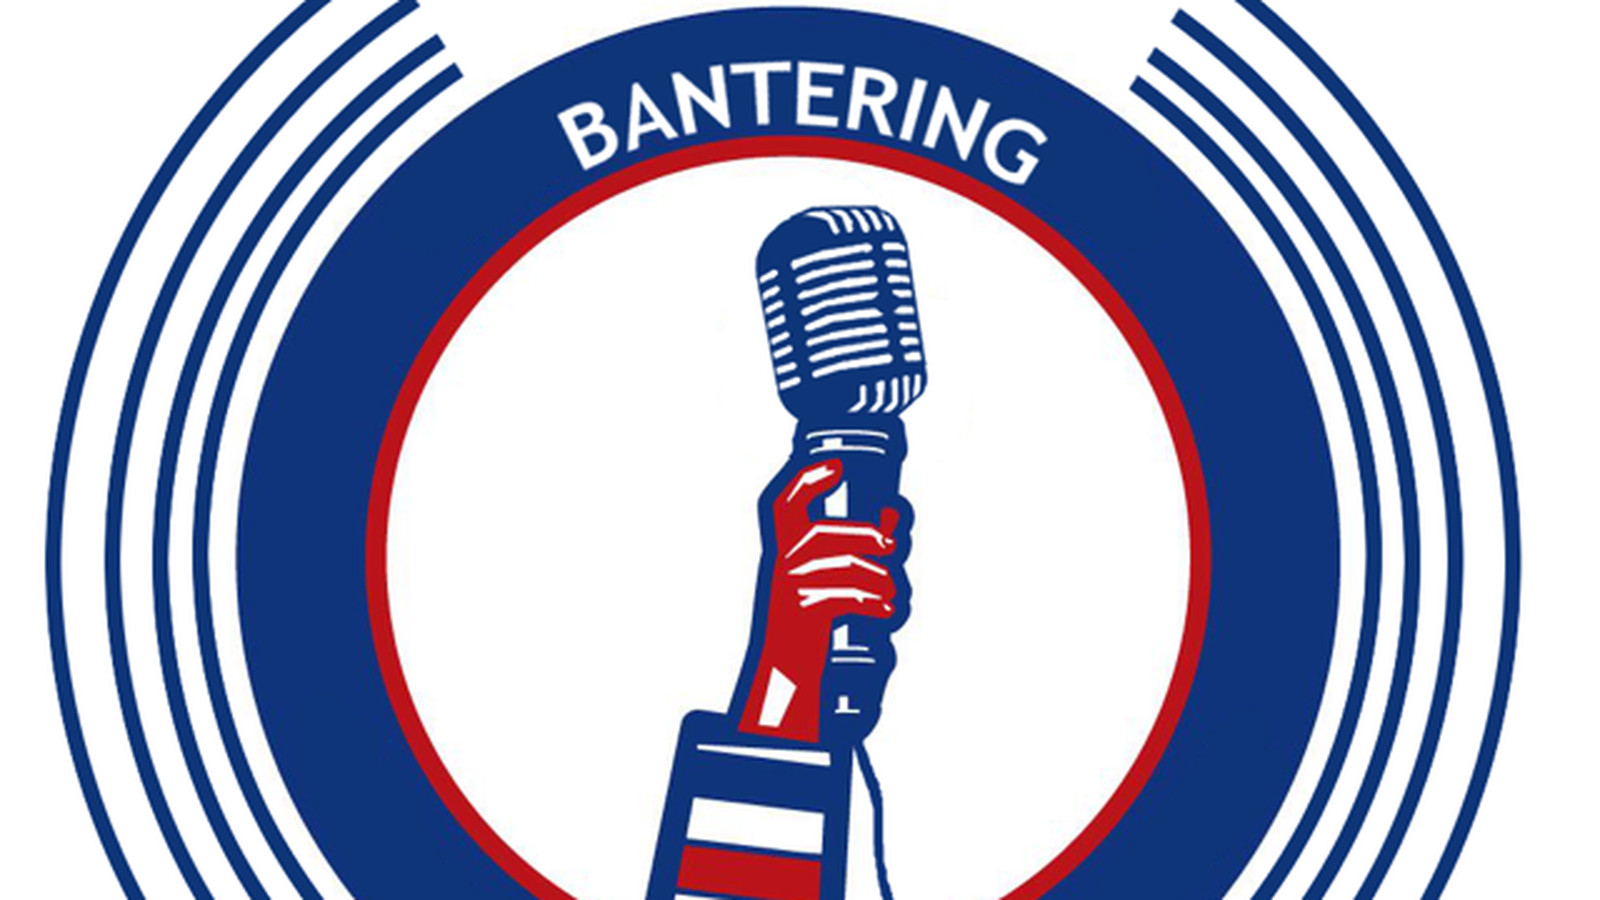 Banter_podcast_logo_no_sticks.0.0